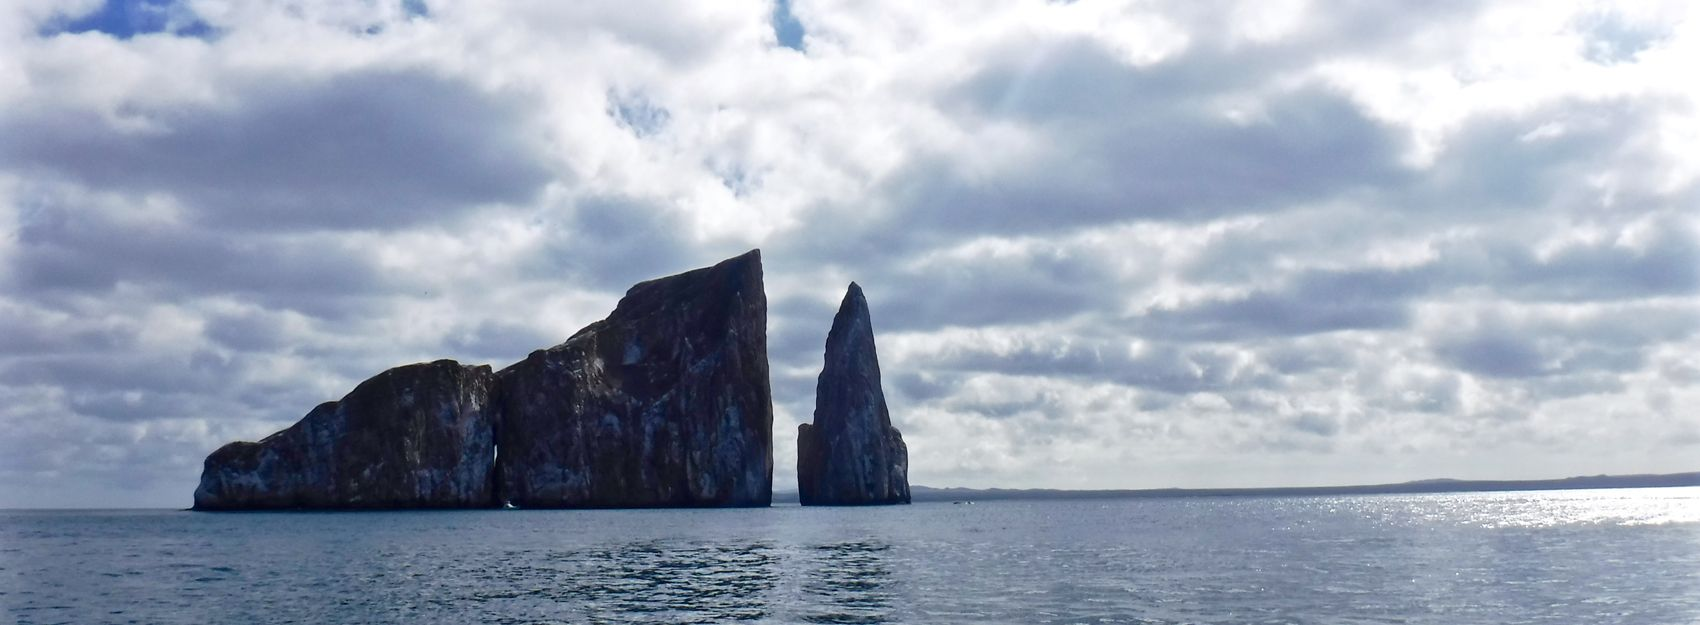 galapagos islands kicker rock